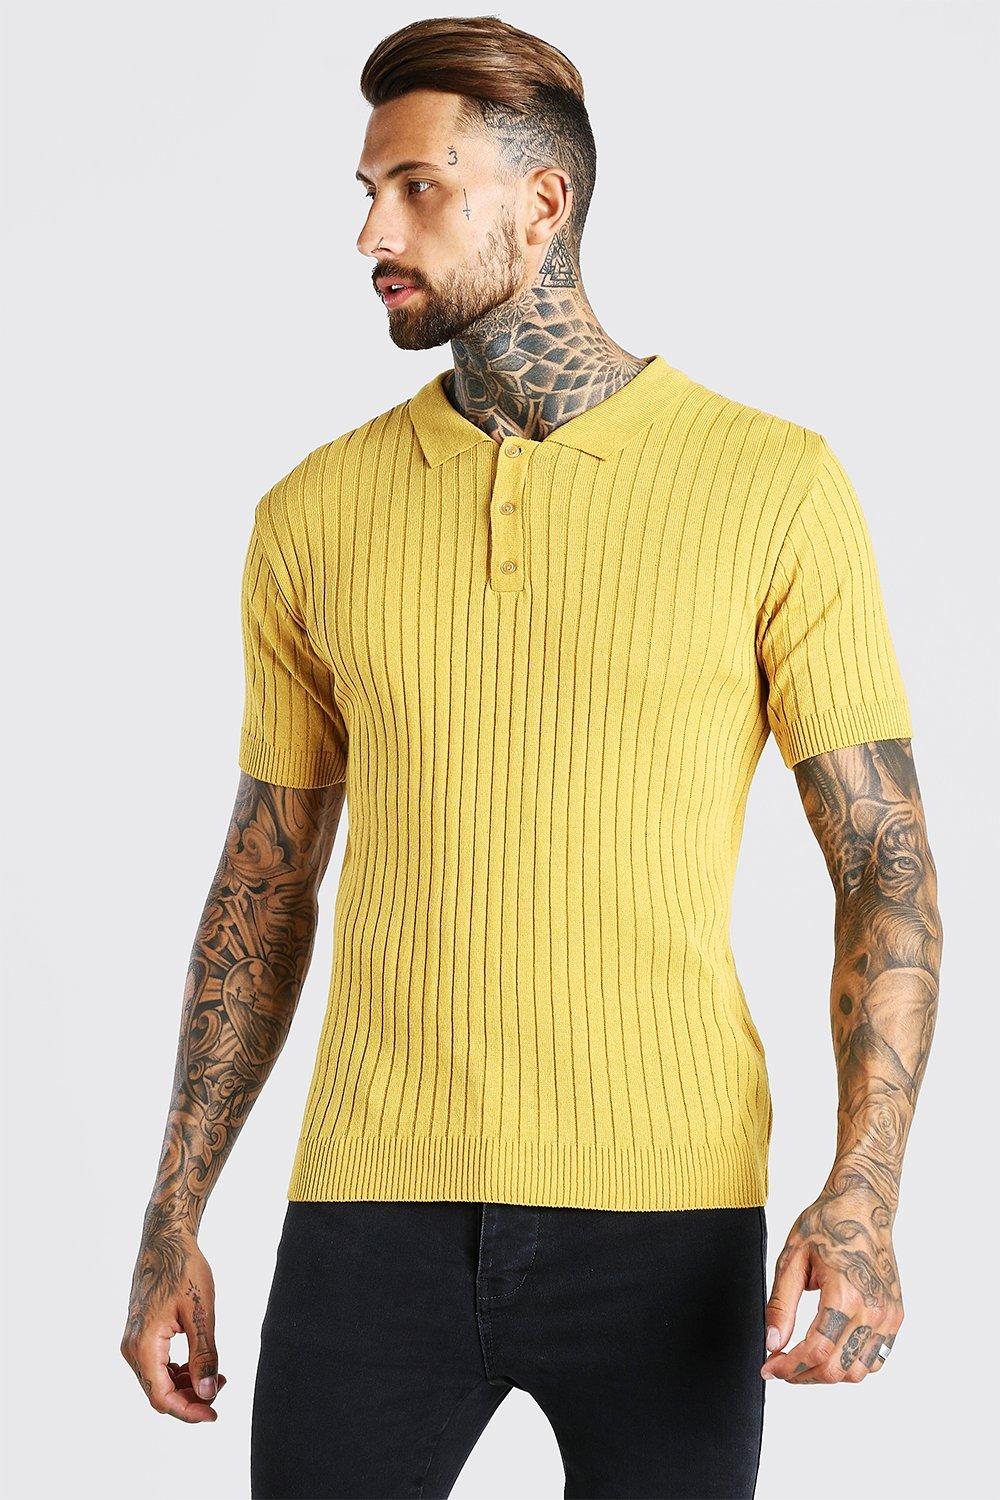 60s 70s Men's Clothing UK | Shirts, Trousers, Shoes Mens Muscle Fit Ribbed Knitted Polo - Yellow $10.00 AT vintagedancer.com